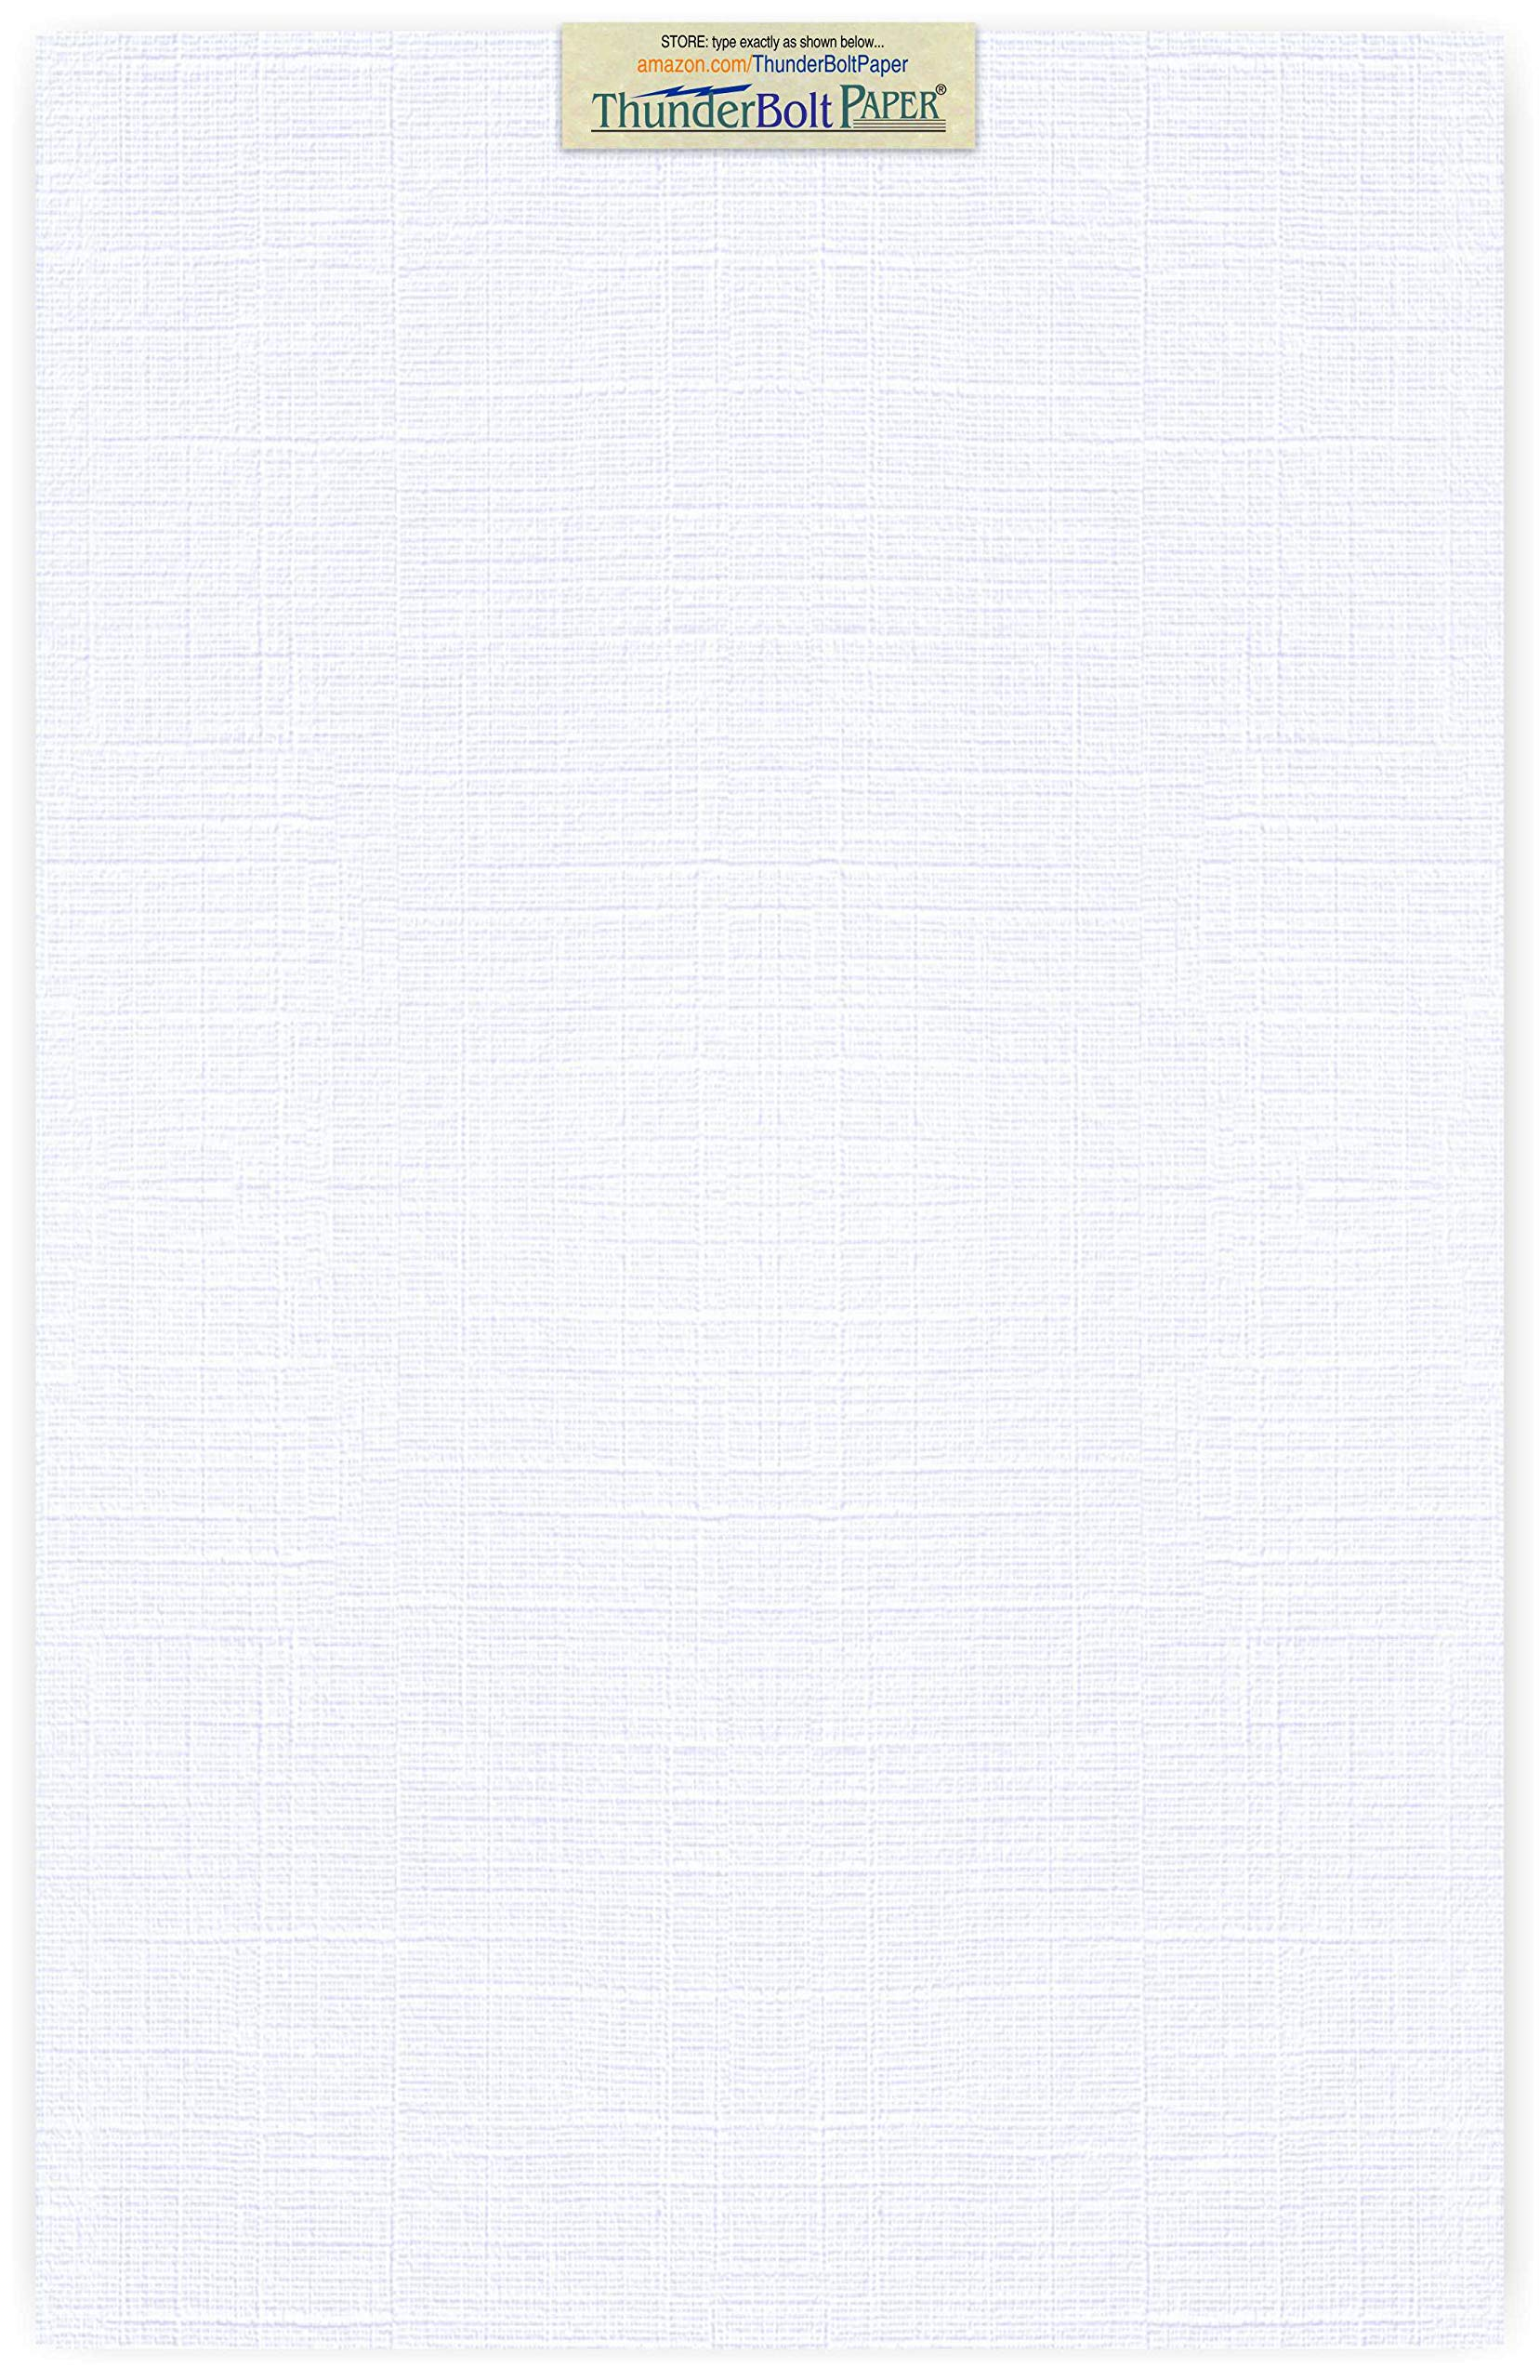 50 Bright White Linen 80# Cover Paper Sheets - 11'' X 17'' (11X17 Inches) Tabloid|Ledger|Booklet Size - 80 lb/Pound Card Weight - Fine Linen Textured Finish Cardstock